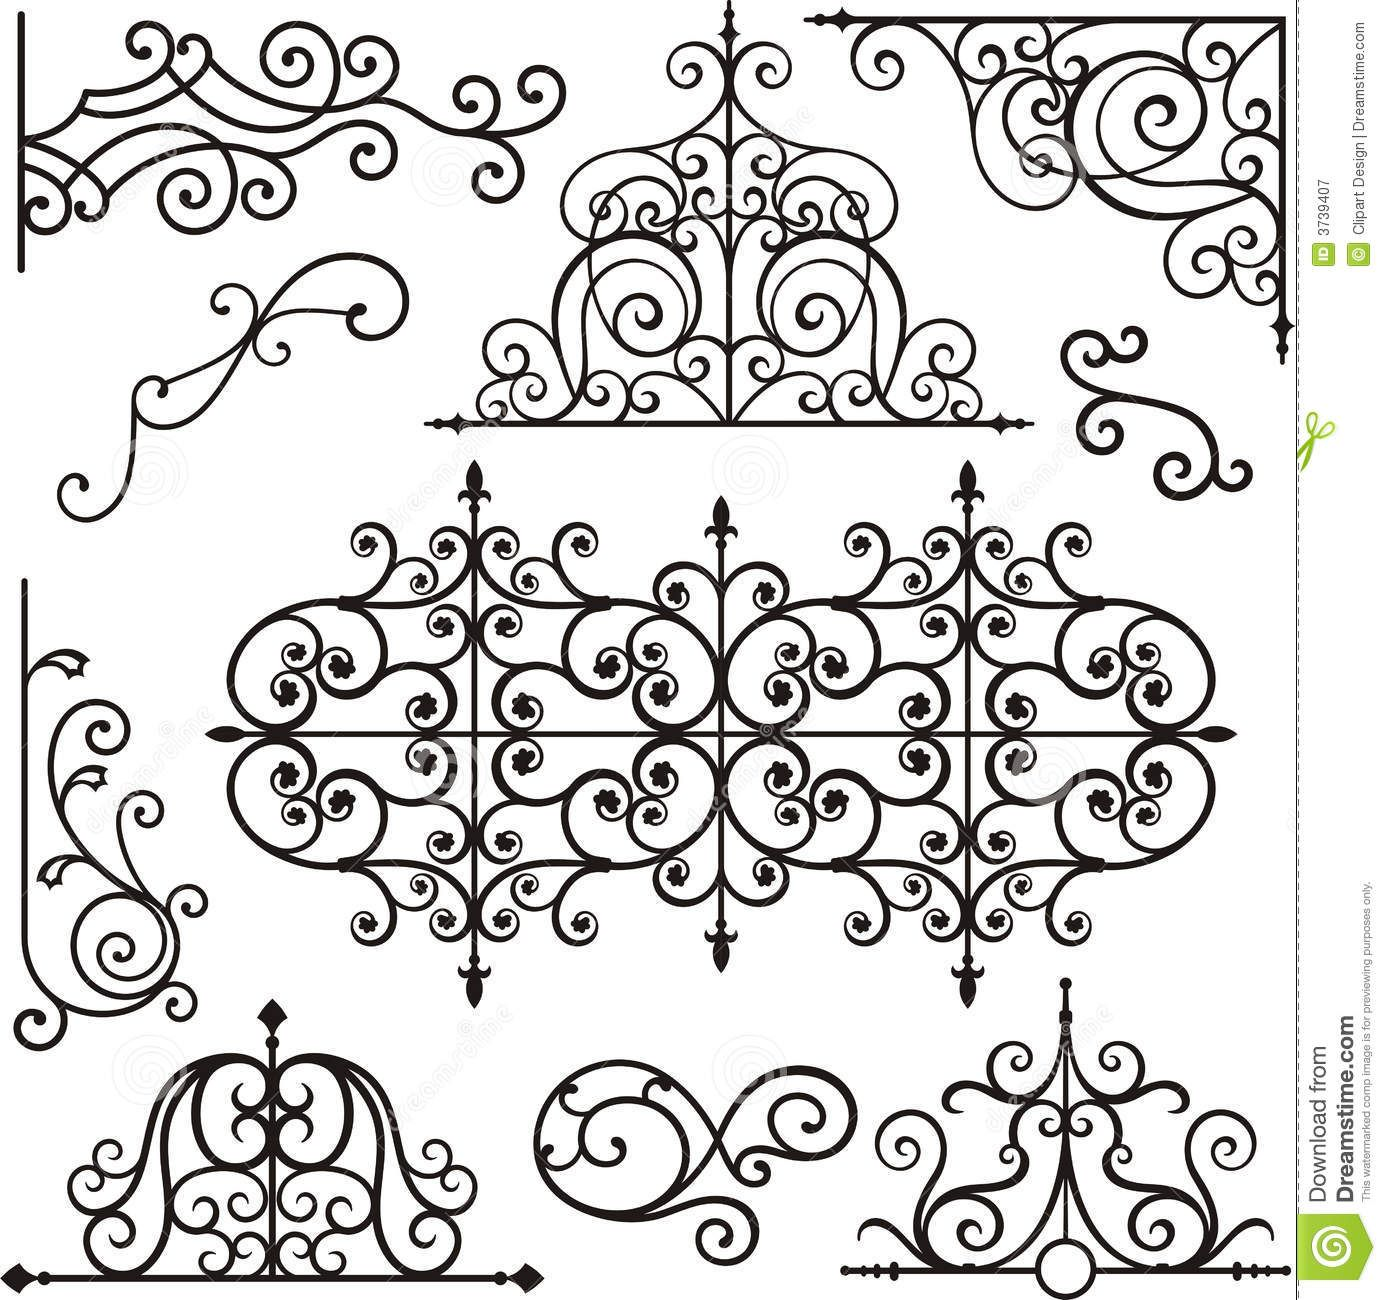 Wrough Iron Ornaments Download From Over 63 Million High Quality Stock Photos Images Vectors Sign Up For Free Today I Fer Forge Cintreuse Table Fer Forge